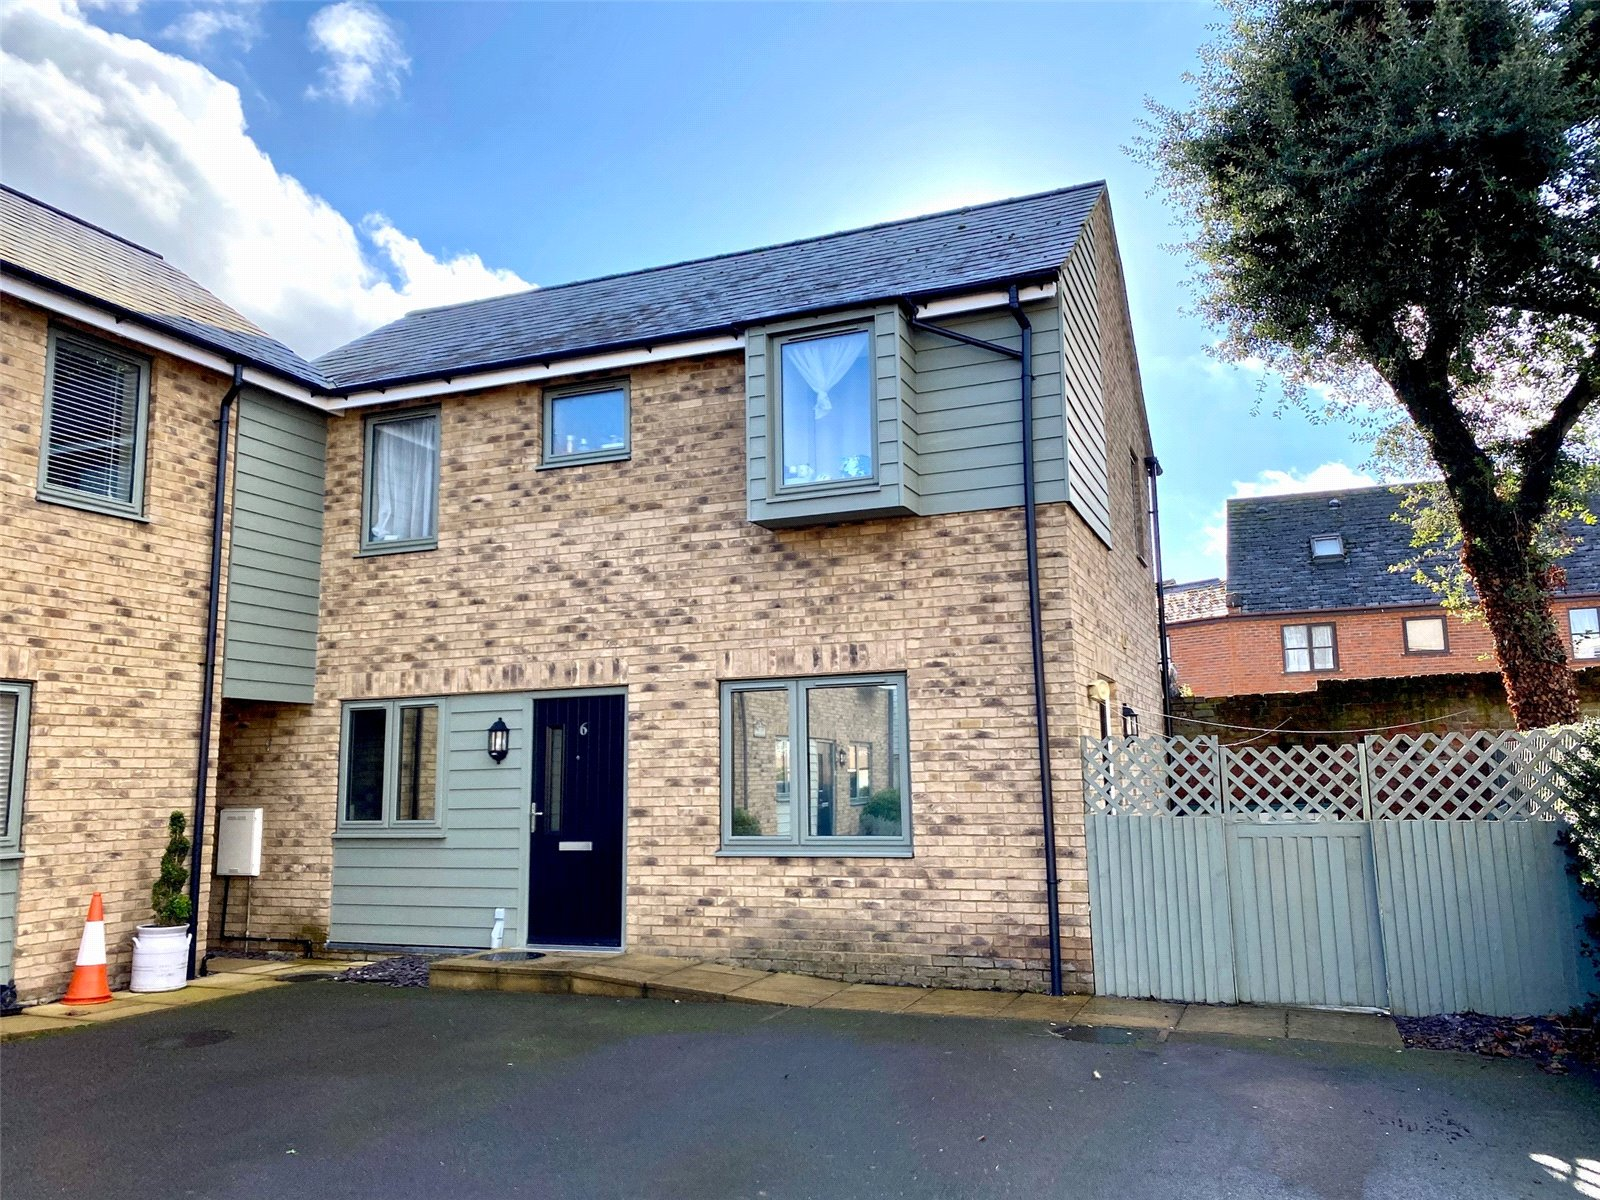 3 bed house for sale in St. Neots, PE19 2DZ, PE19